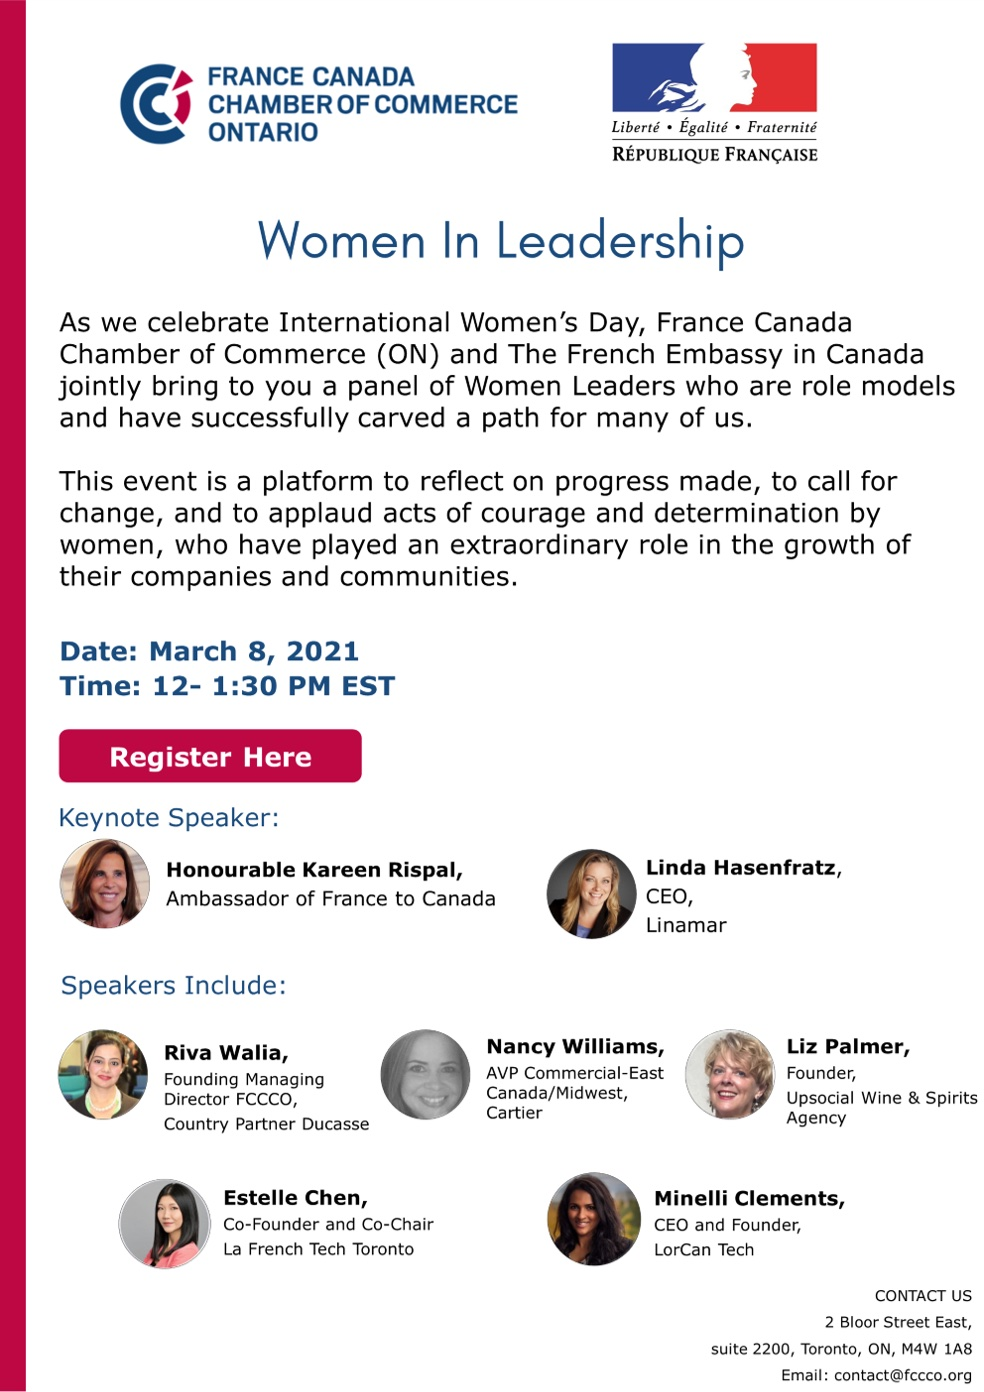 CELEBRATE INTERNATIONAL WOMEN'S DAY WITH FRANCE CANADA CHAMBER OF COMMERCE – WOMEN IN LEADERSHIP – MARCH 8TH, 2021